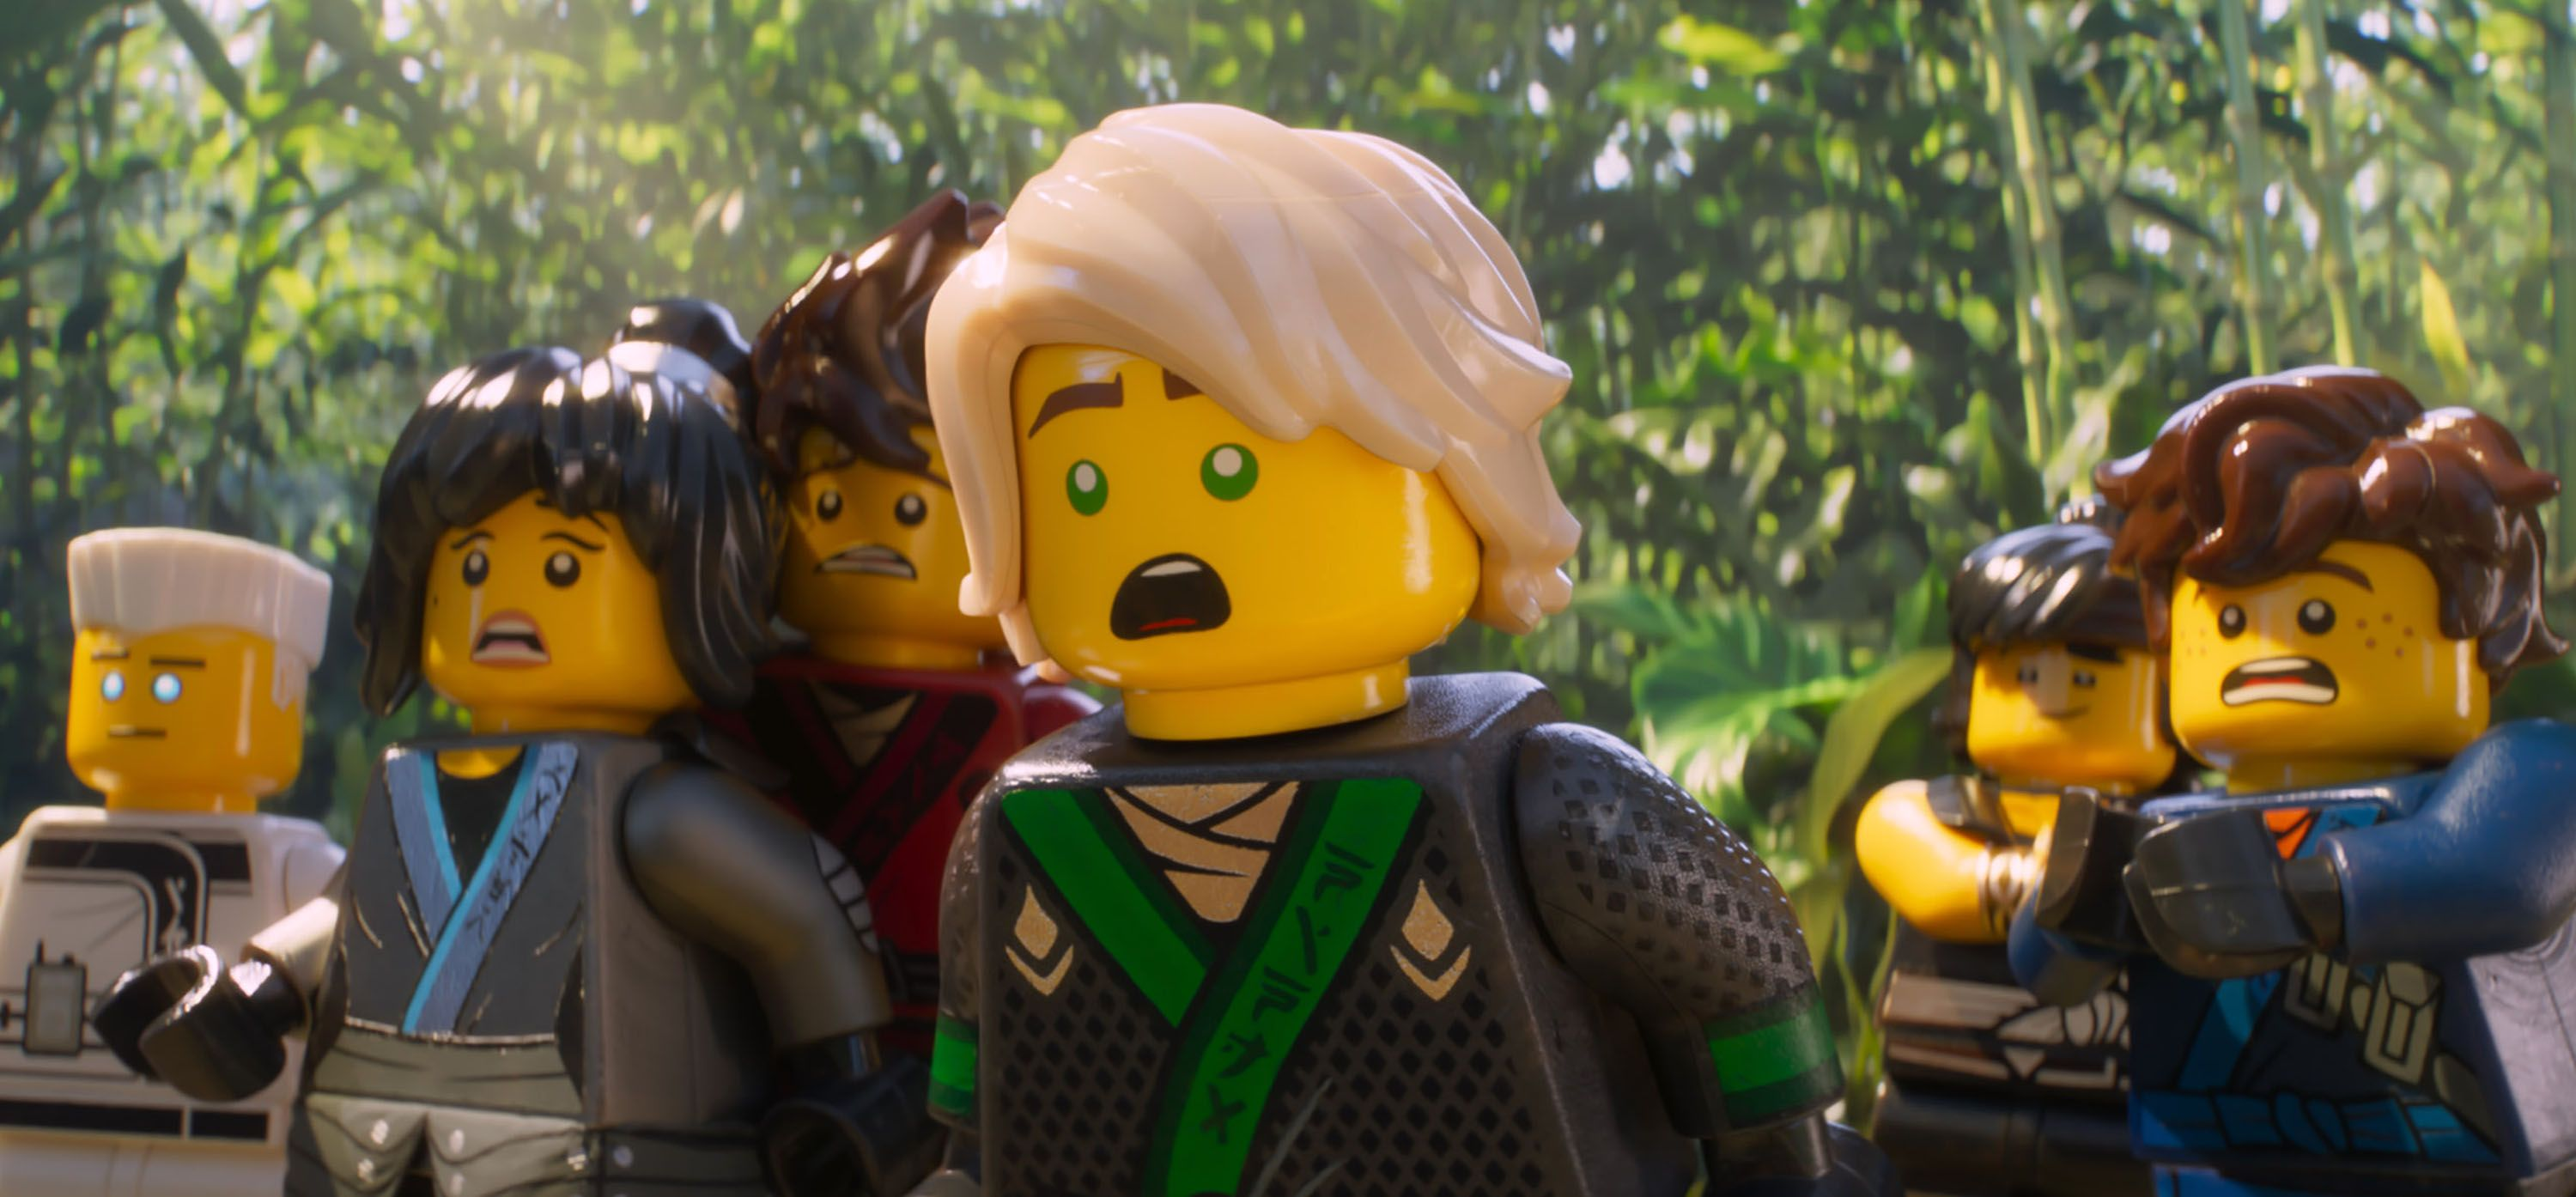 Lego Ninjago Movie Producers On The Lego Universe Collider